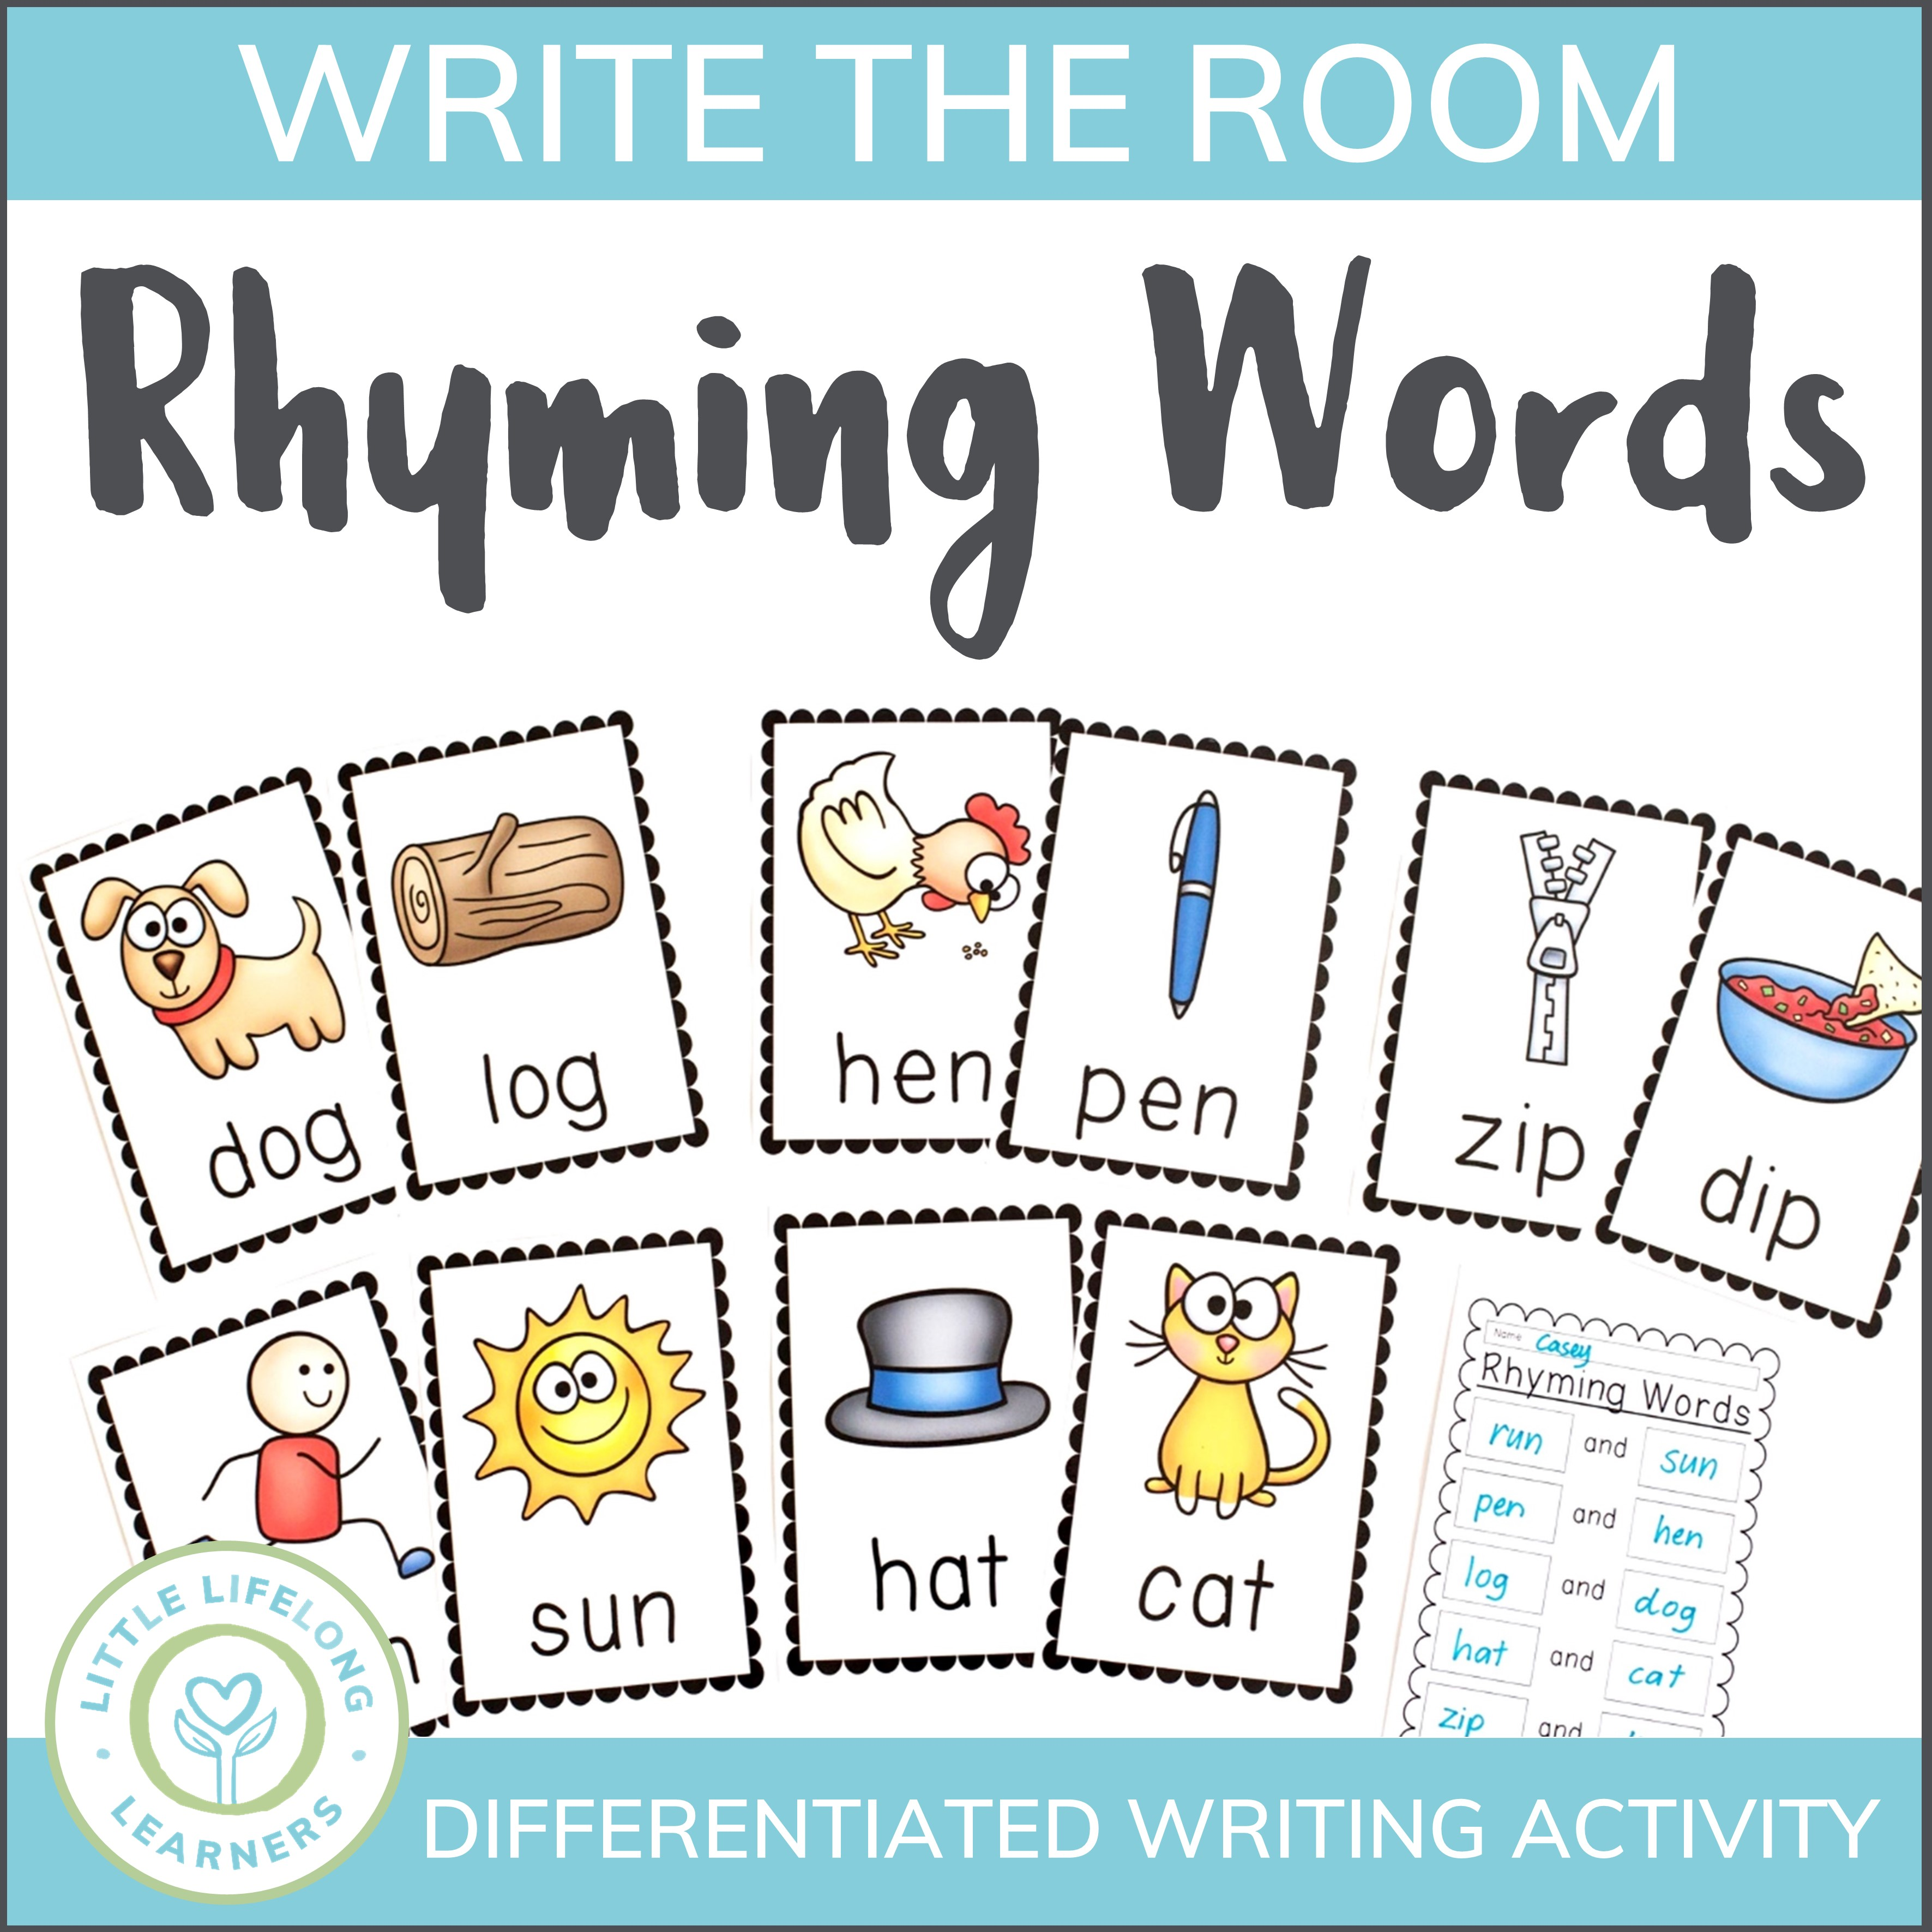 Rhyming Word Activity - Write the Room